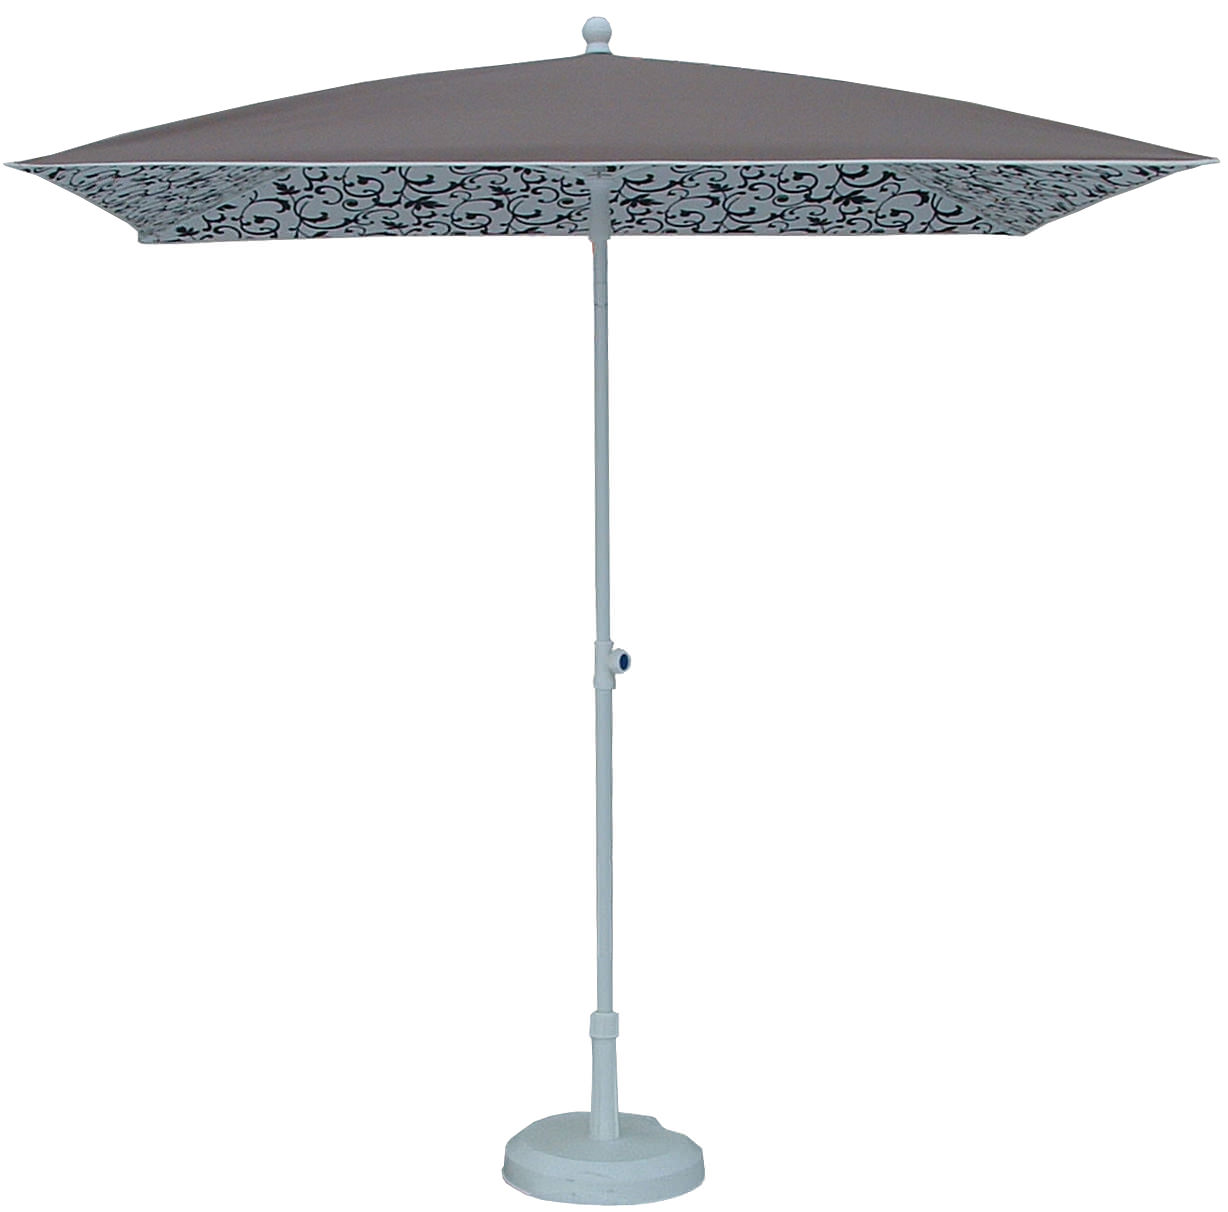 parasol rectangulaire 200x150 doubl parasol classique parasol de balcon. Black Bedroom Furniture Sets. Home Design Ideas